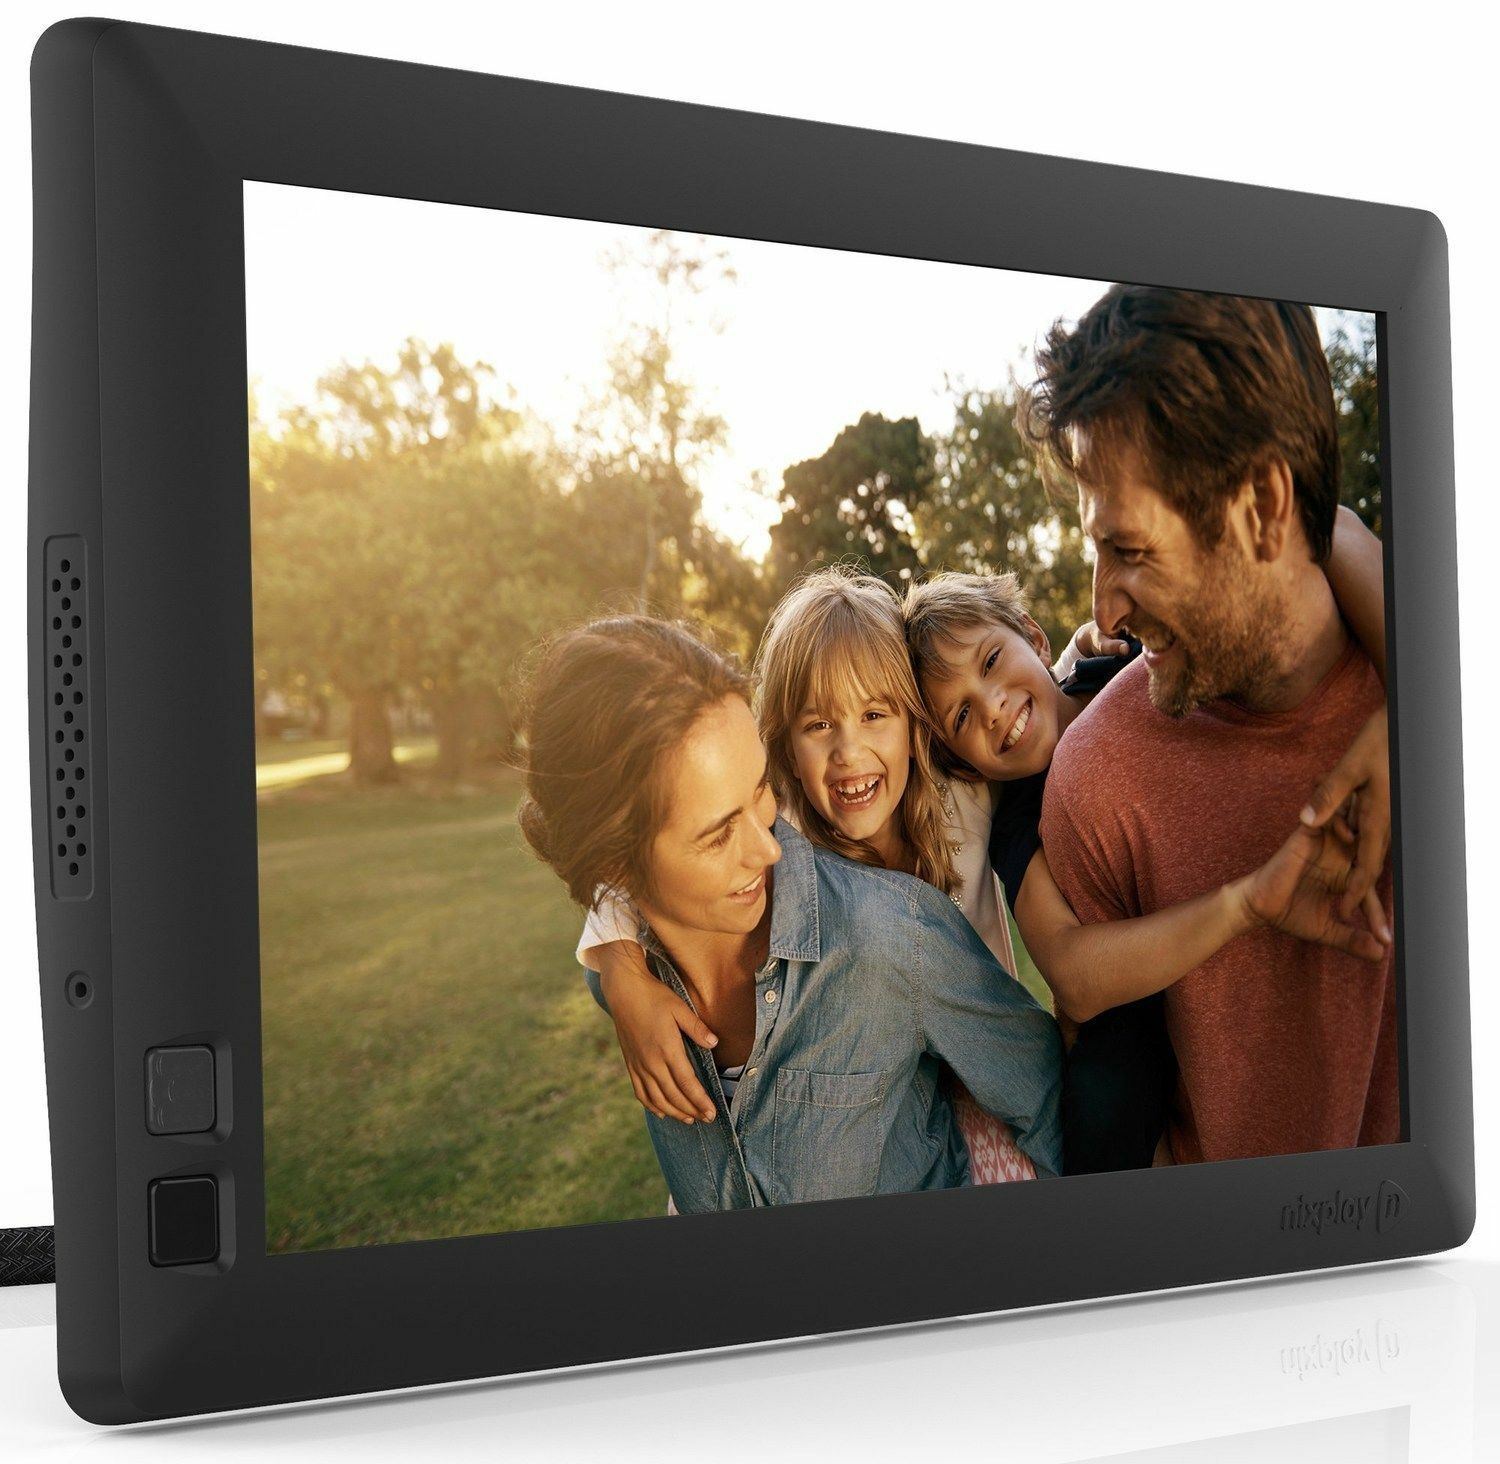 the seed is another family of cloud enabled wireless photo frames from nixplay it comes in three sizes 7 inches 8 inches and 10 inches - Wireless Picture Frame